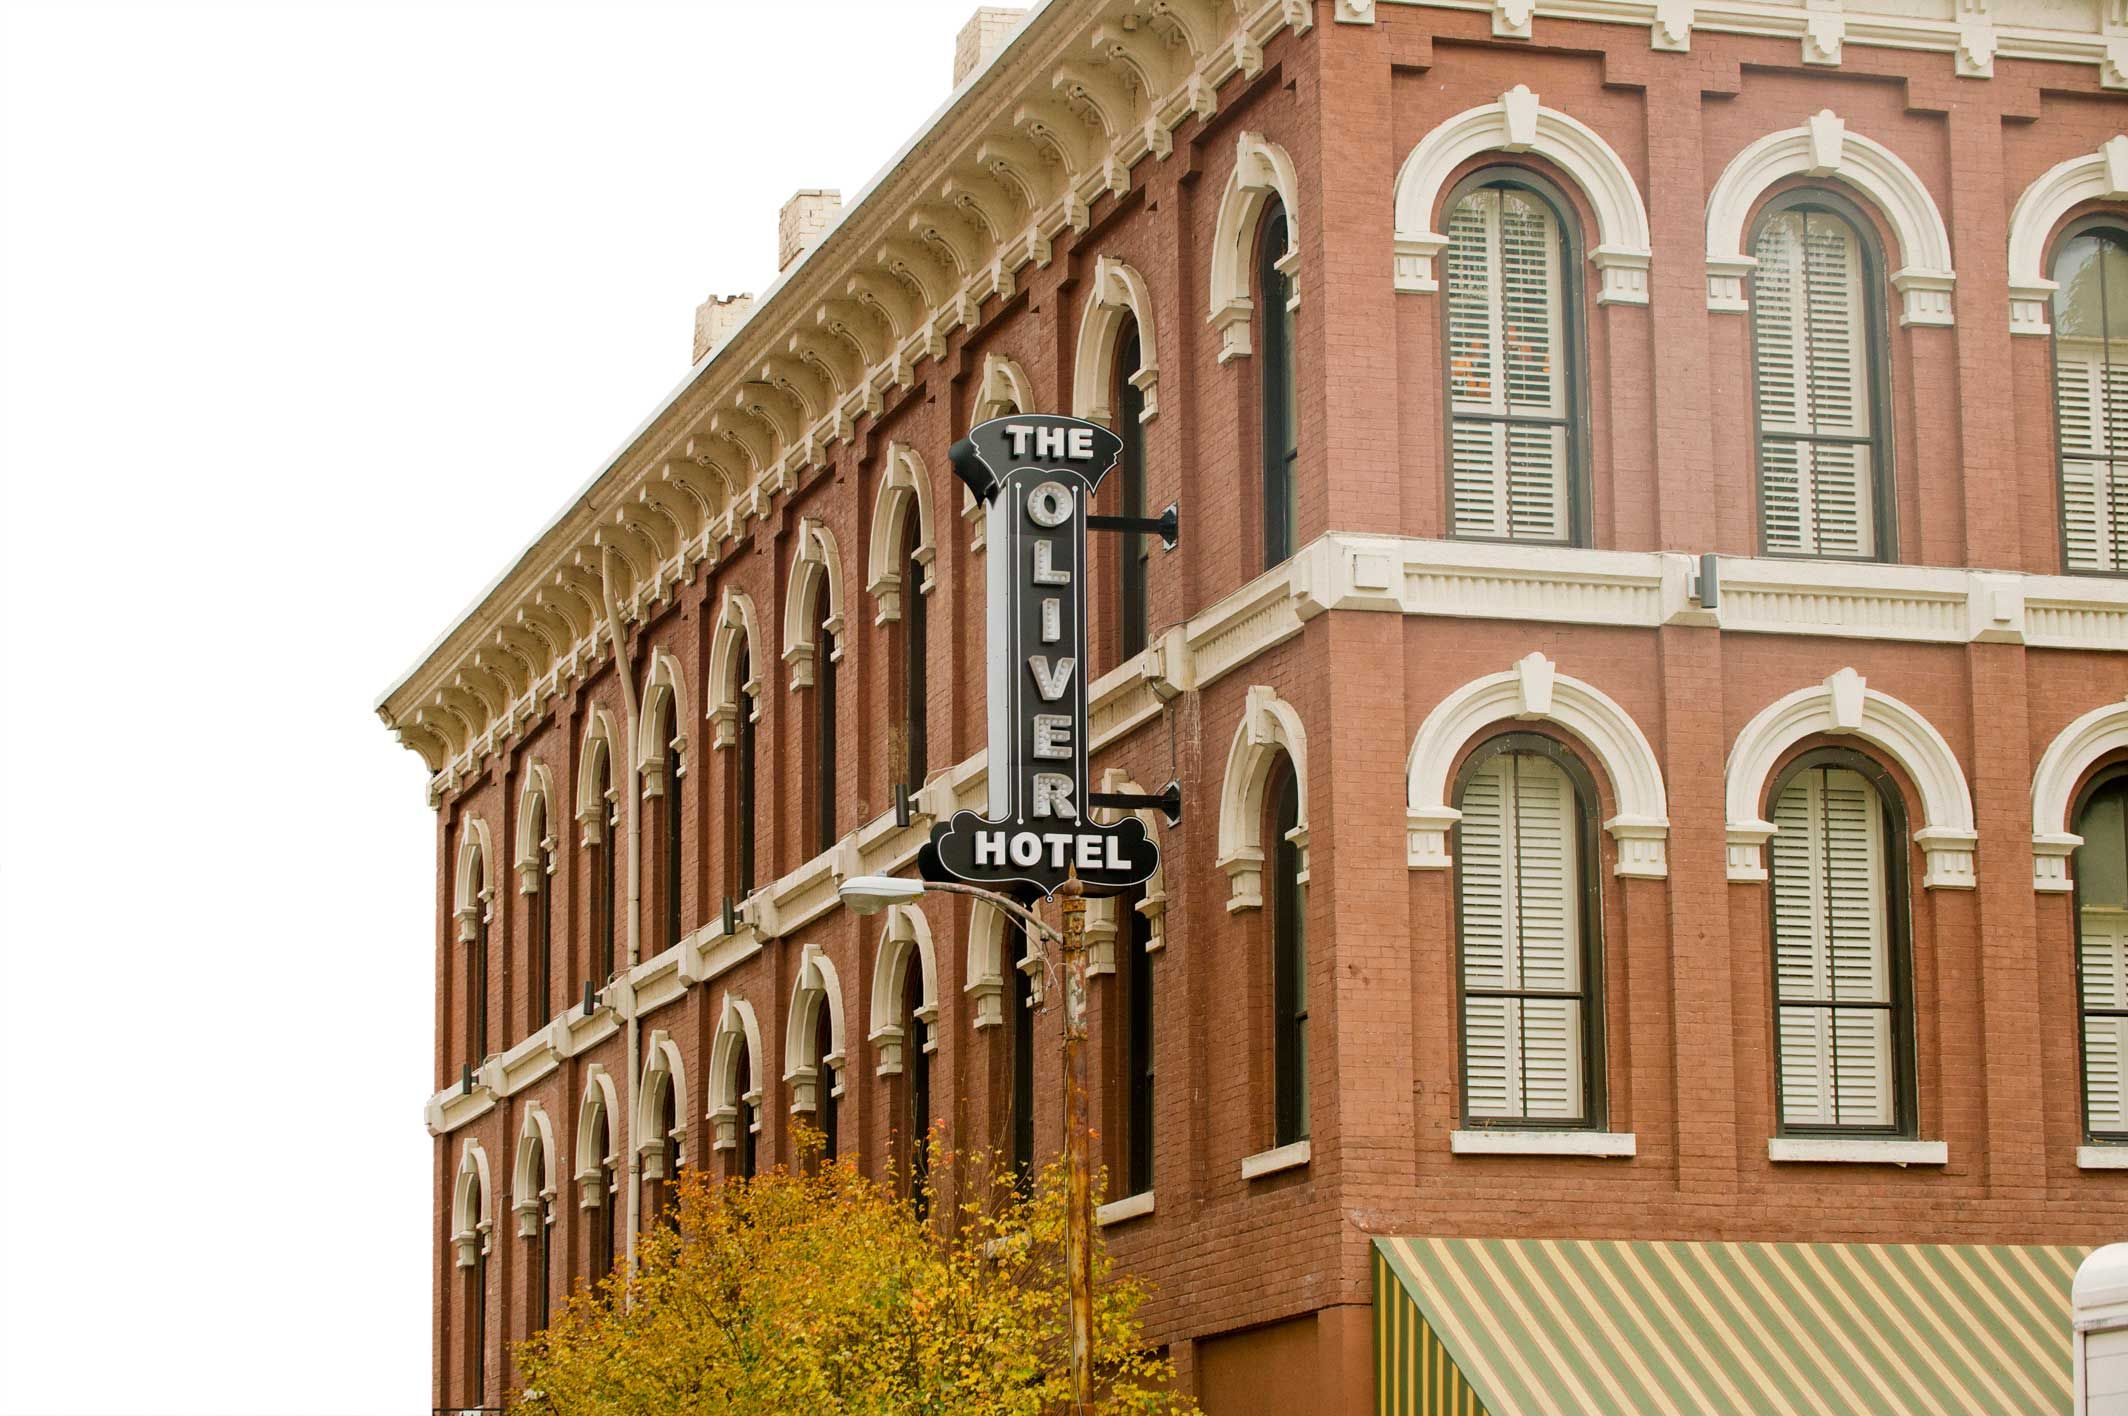 The Oliver Hotel Check Out This Hotel Next Time You Re In Knoxville Tn Rooms From 145 Per Night With Images Oliver Hotel Tennessee Vacation Hotel